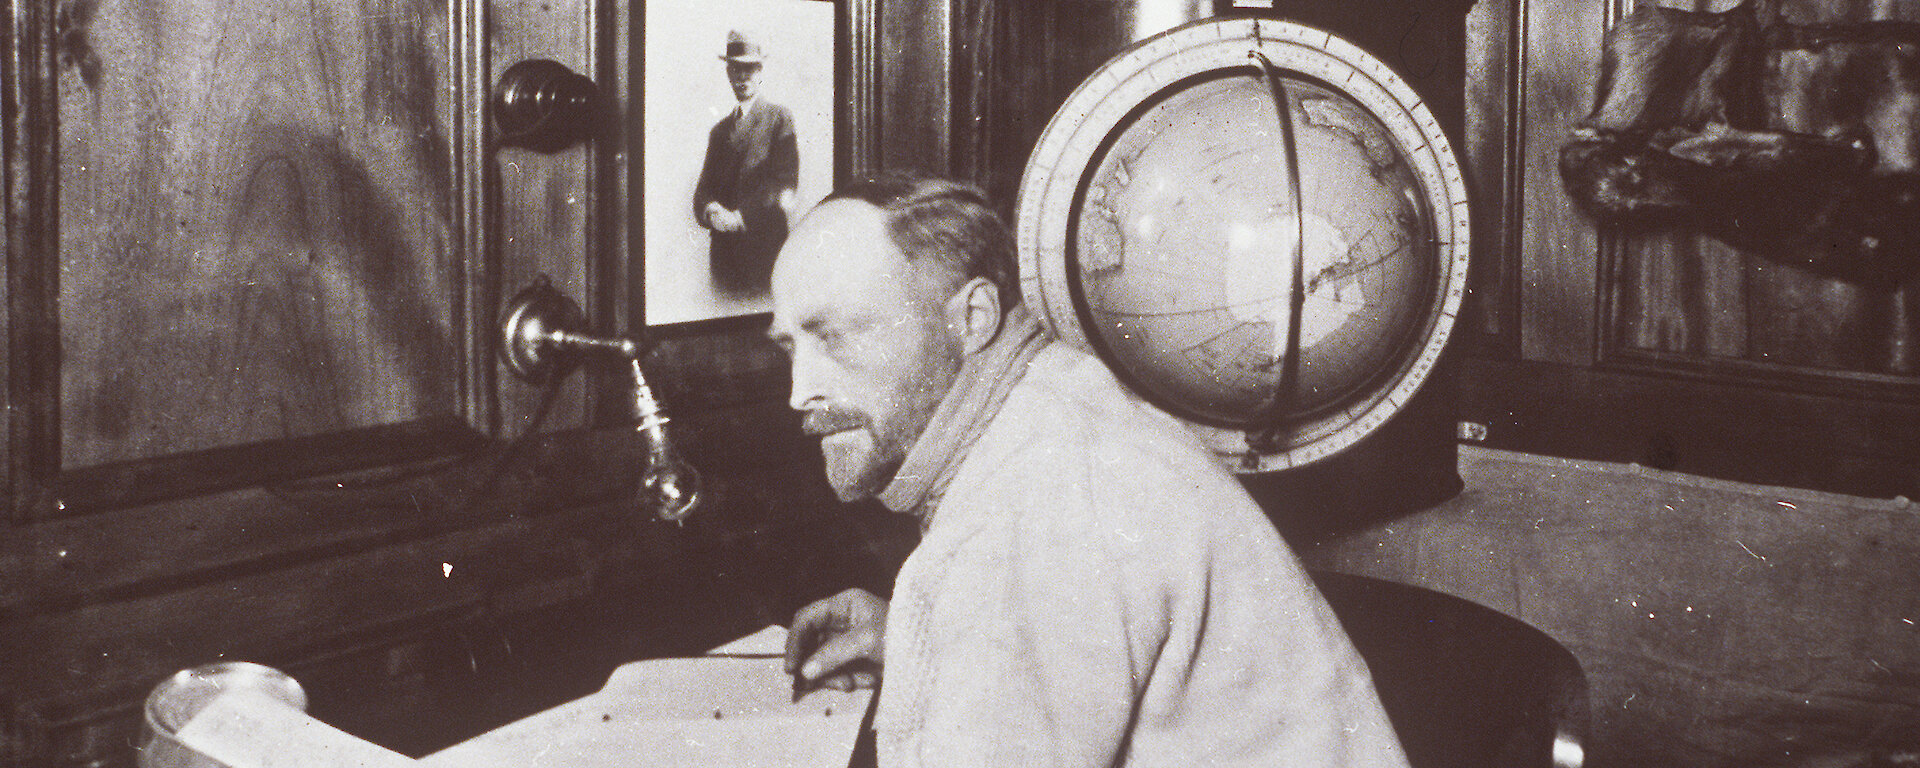 Sir Douglas Mawson in the Commander's Cabin on the Discovery, 1929.